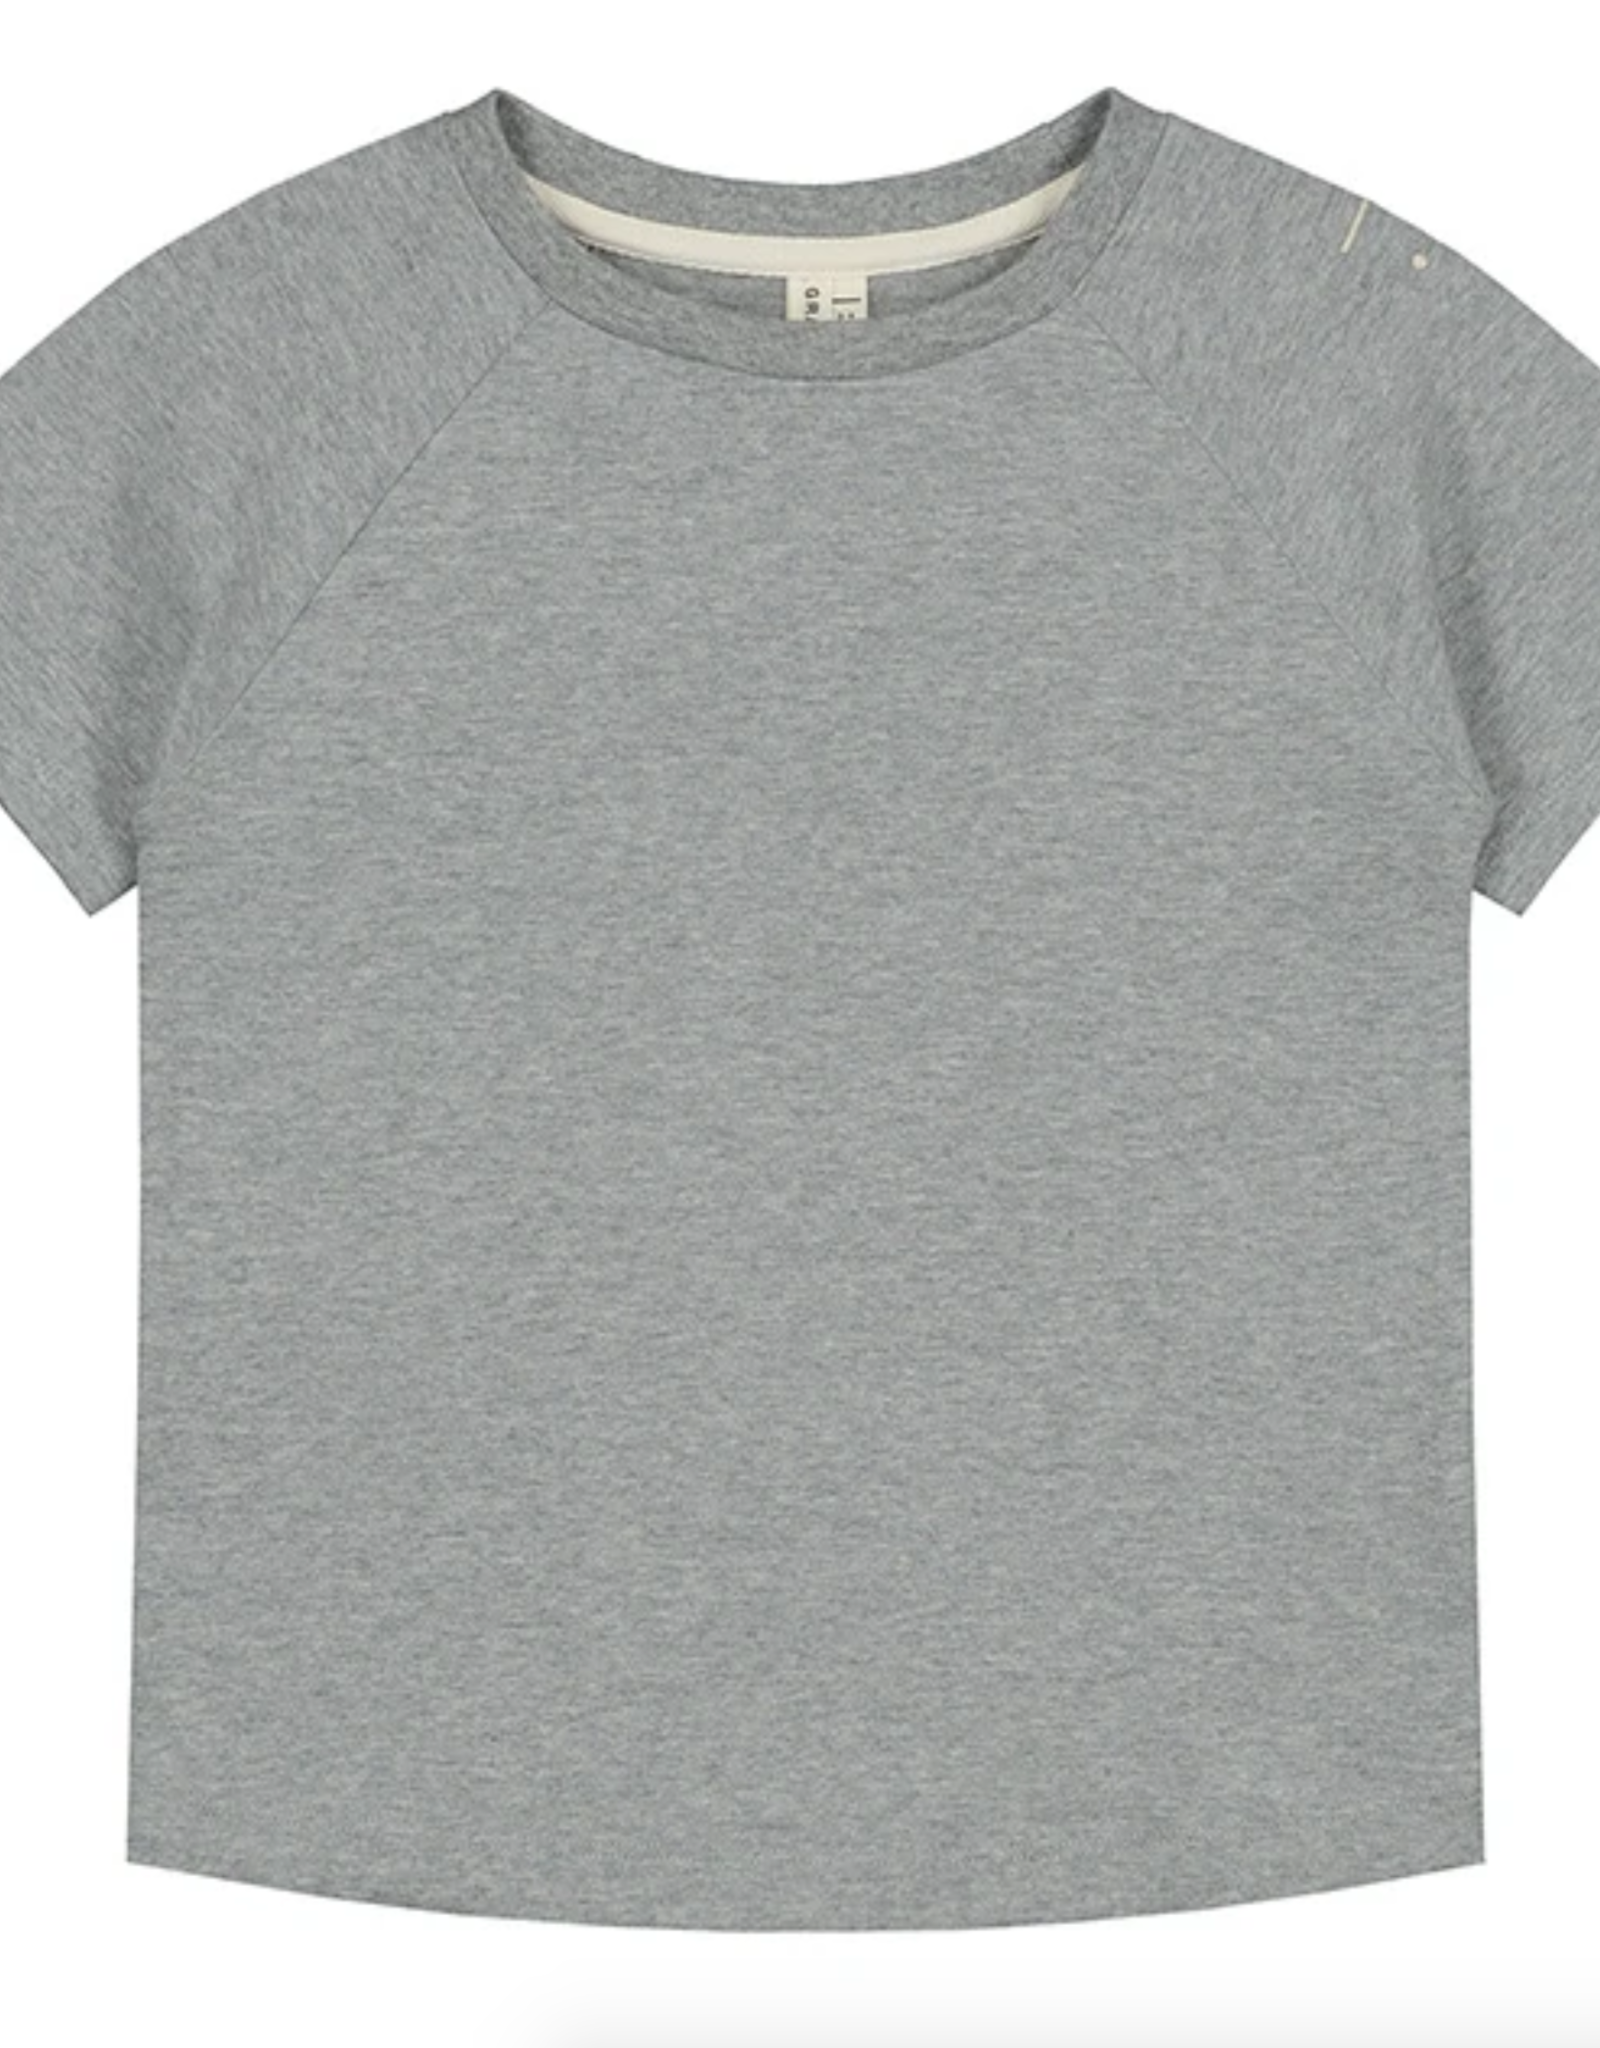 Gray Label Crewneck Tee